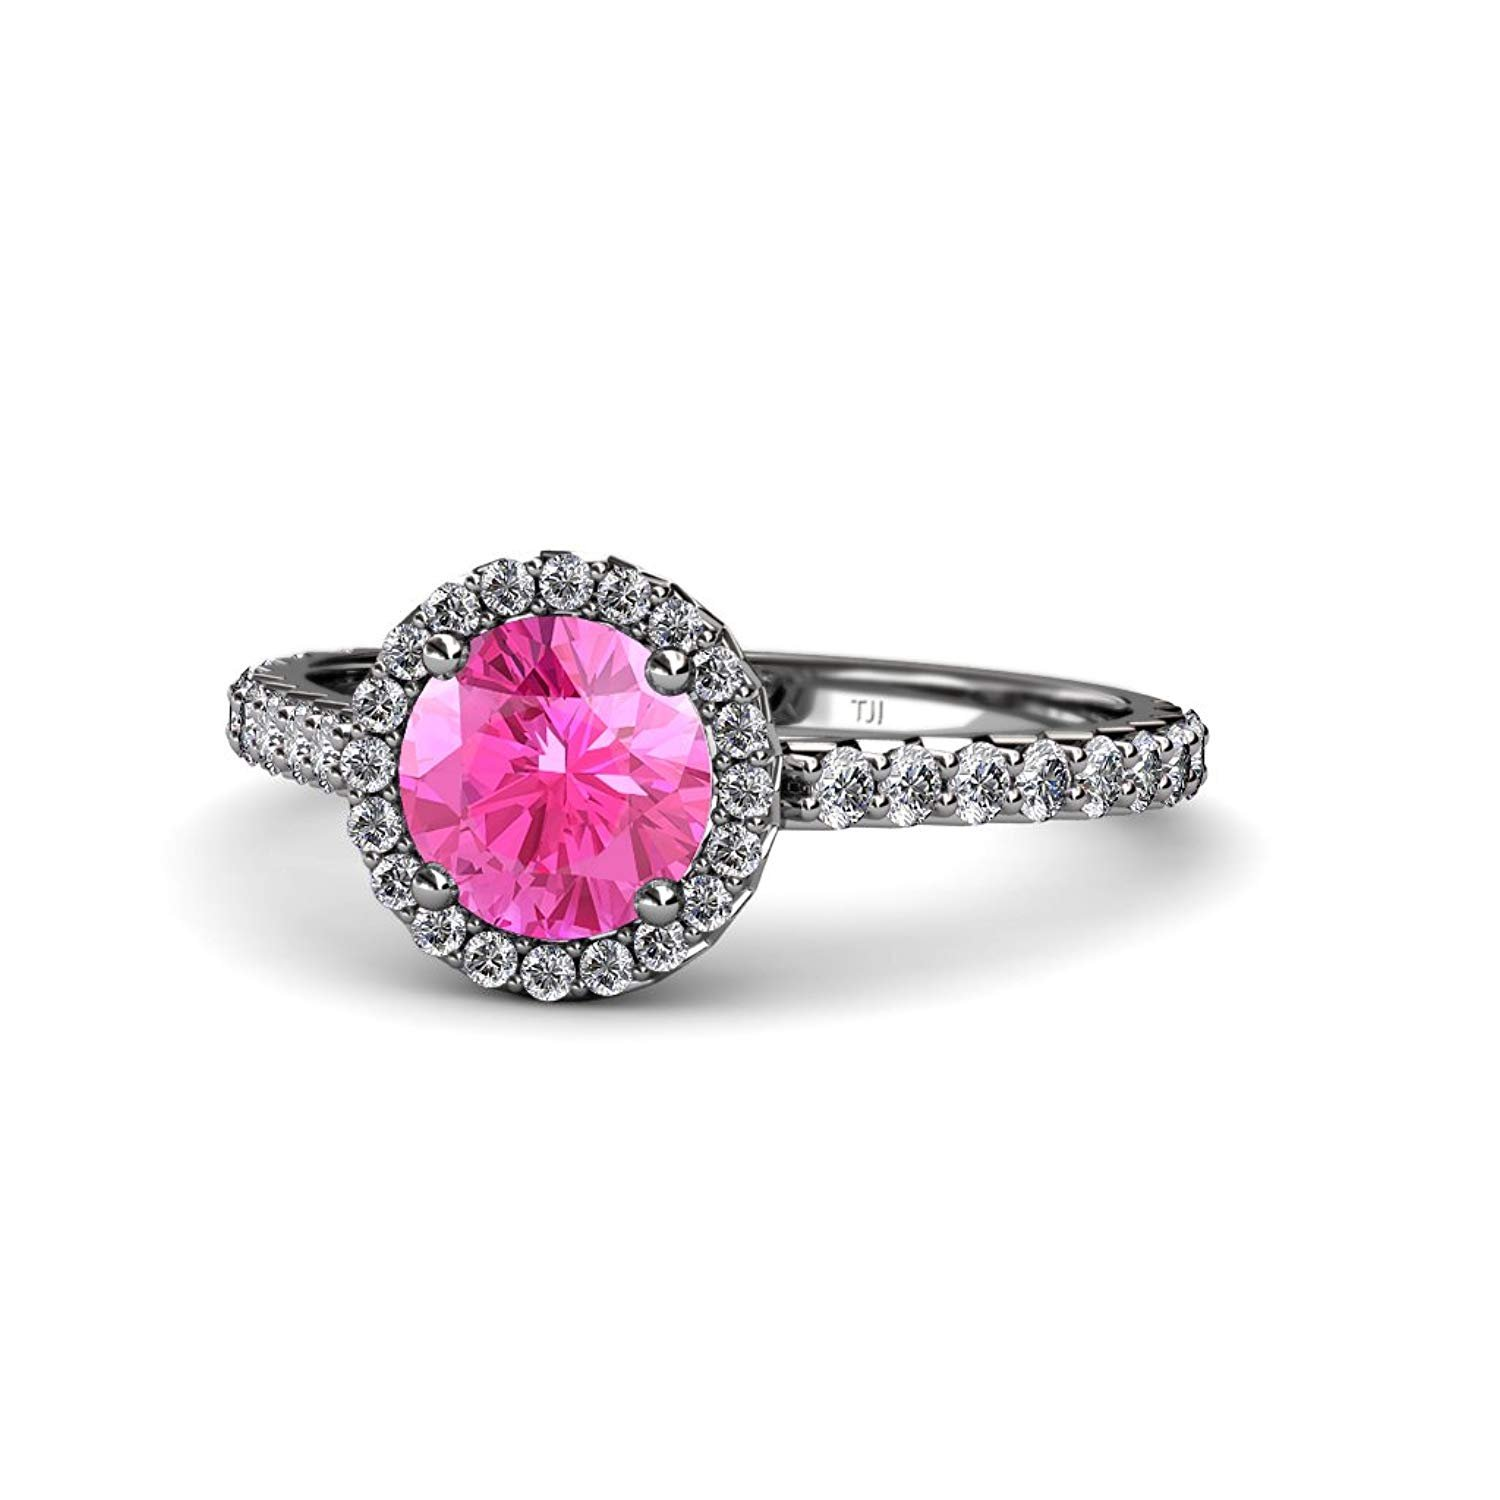 Pink Sapphire and Diamond (SI2-I1, G-H) Halo Engagement Ring 1.33 ct tw in 14K White Gold.size 7.0 by TriJewels